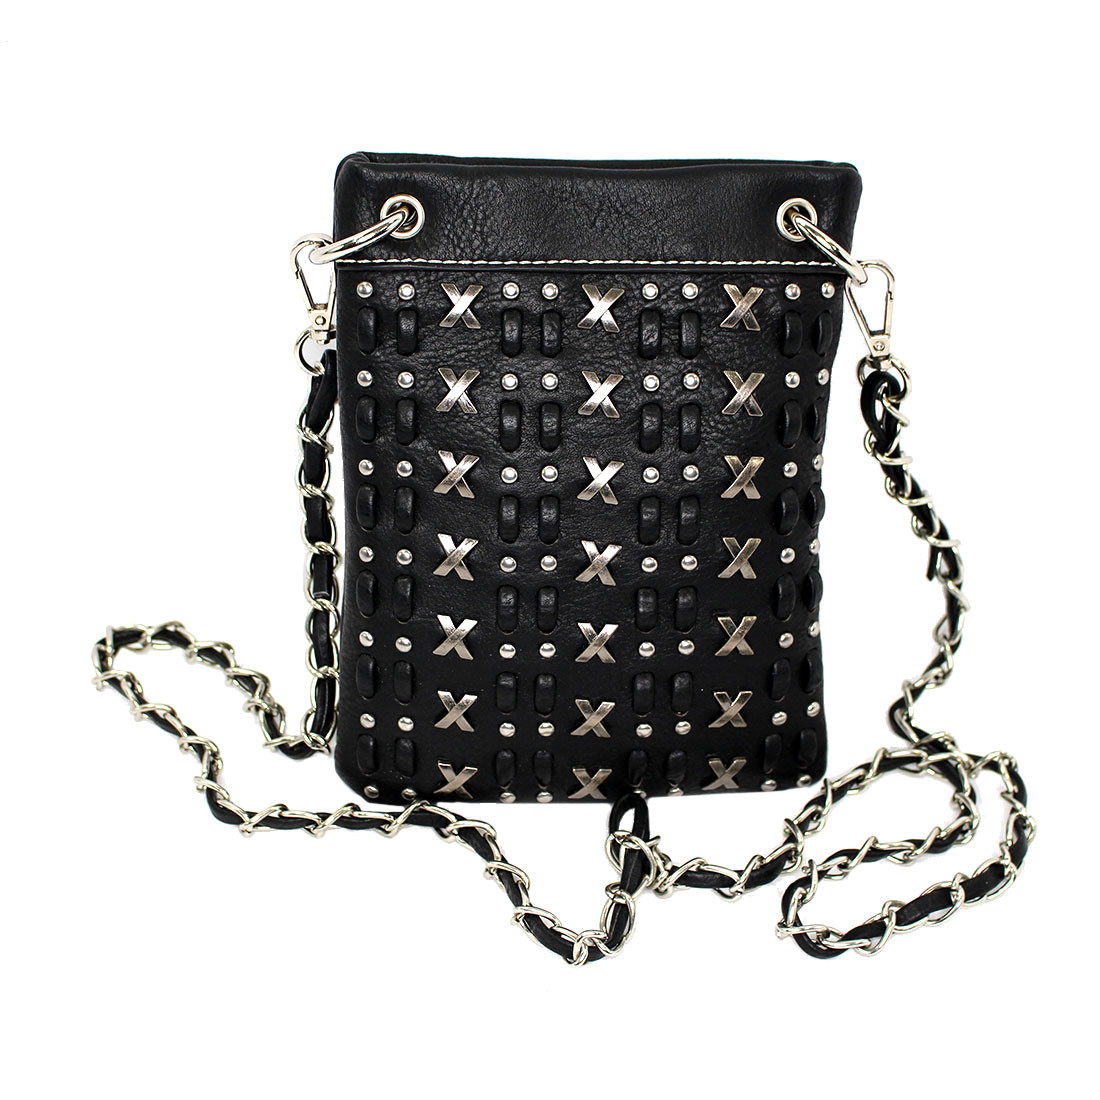 Black crossbody purse with X emblems and rhinestone detail.